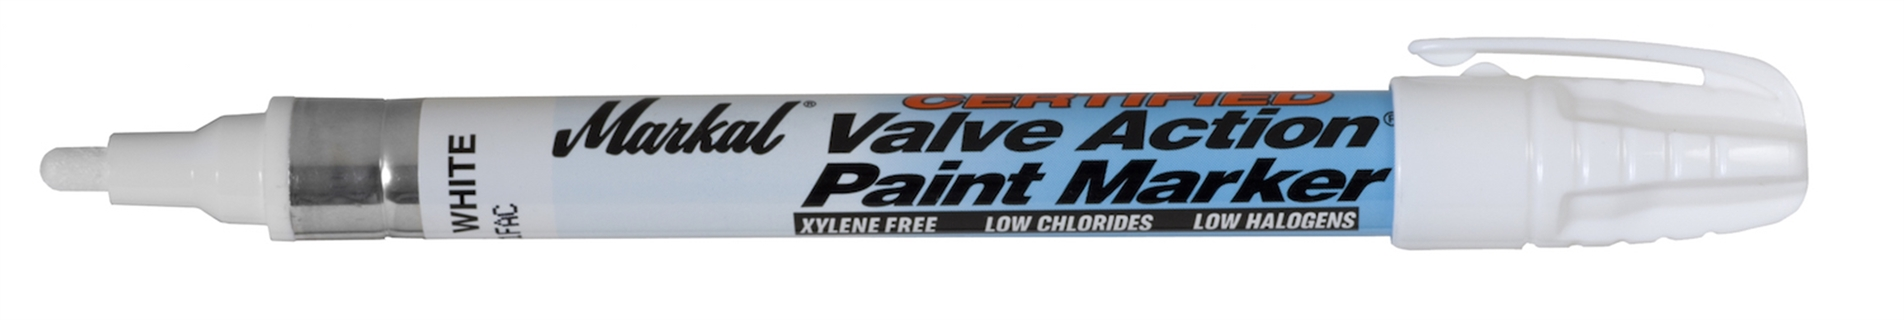 Picture of Certified Valve Action® Paint Marker White